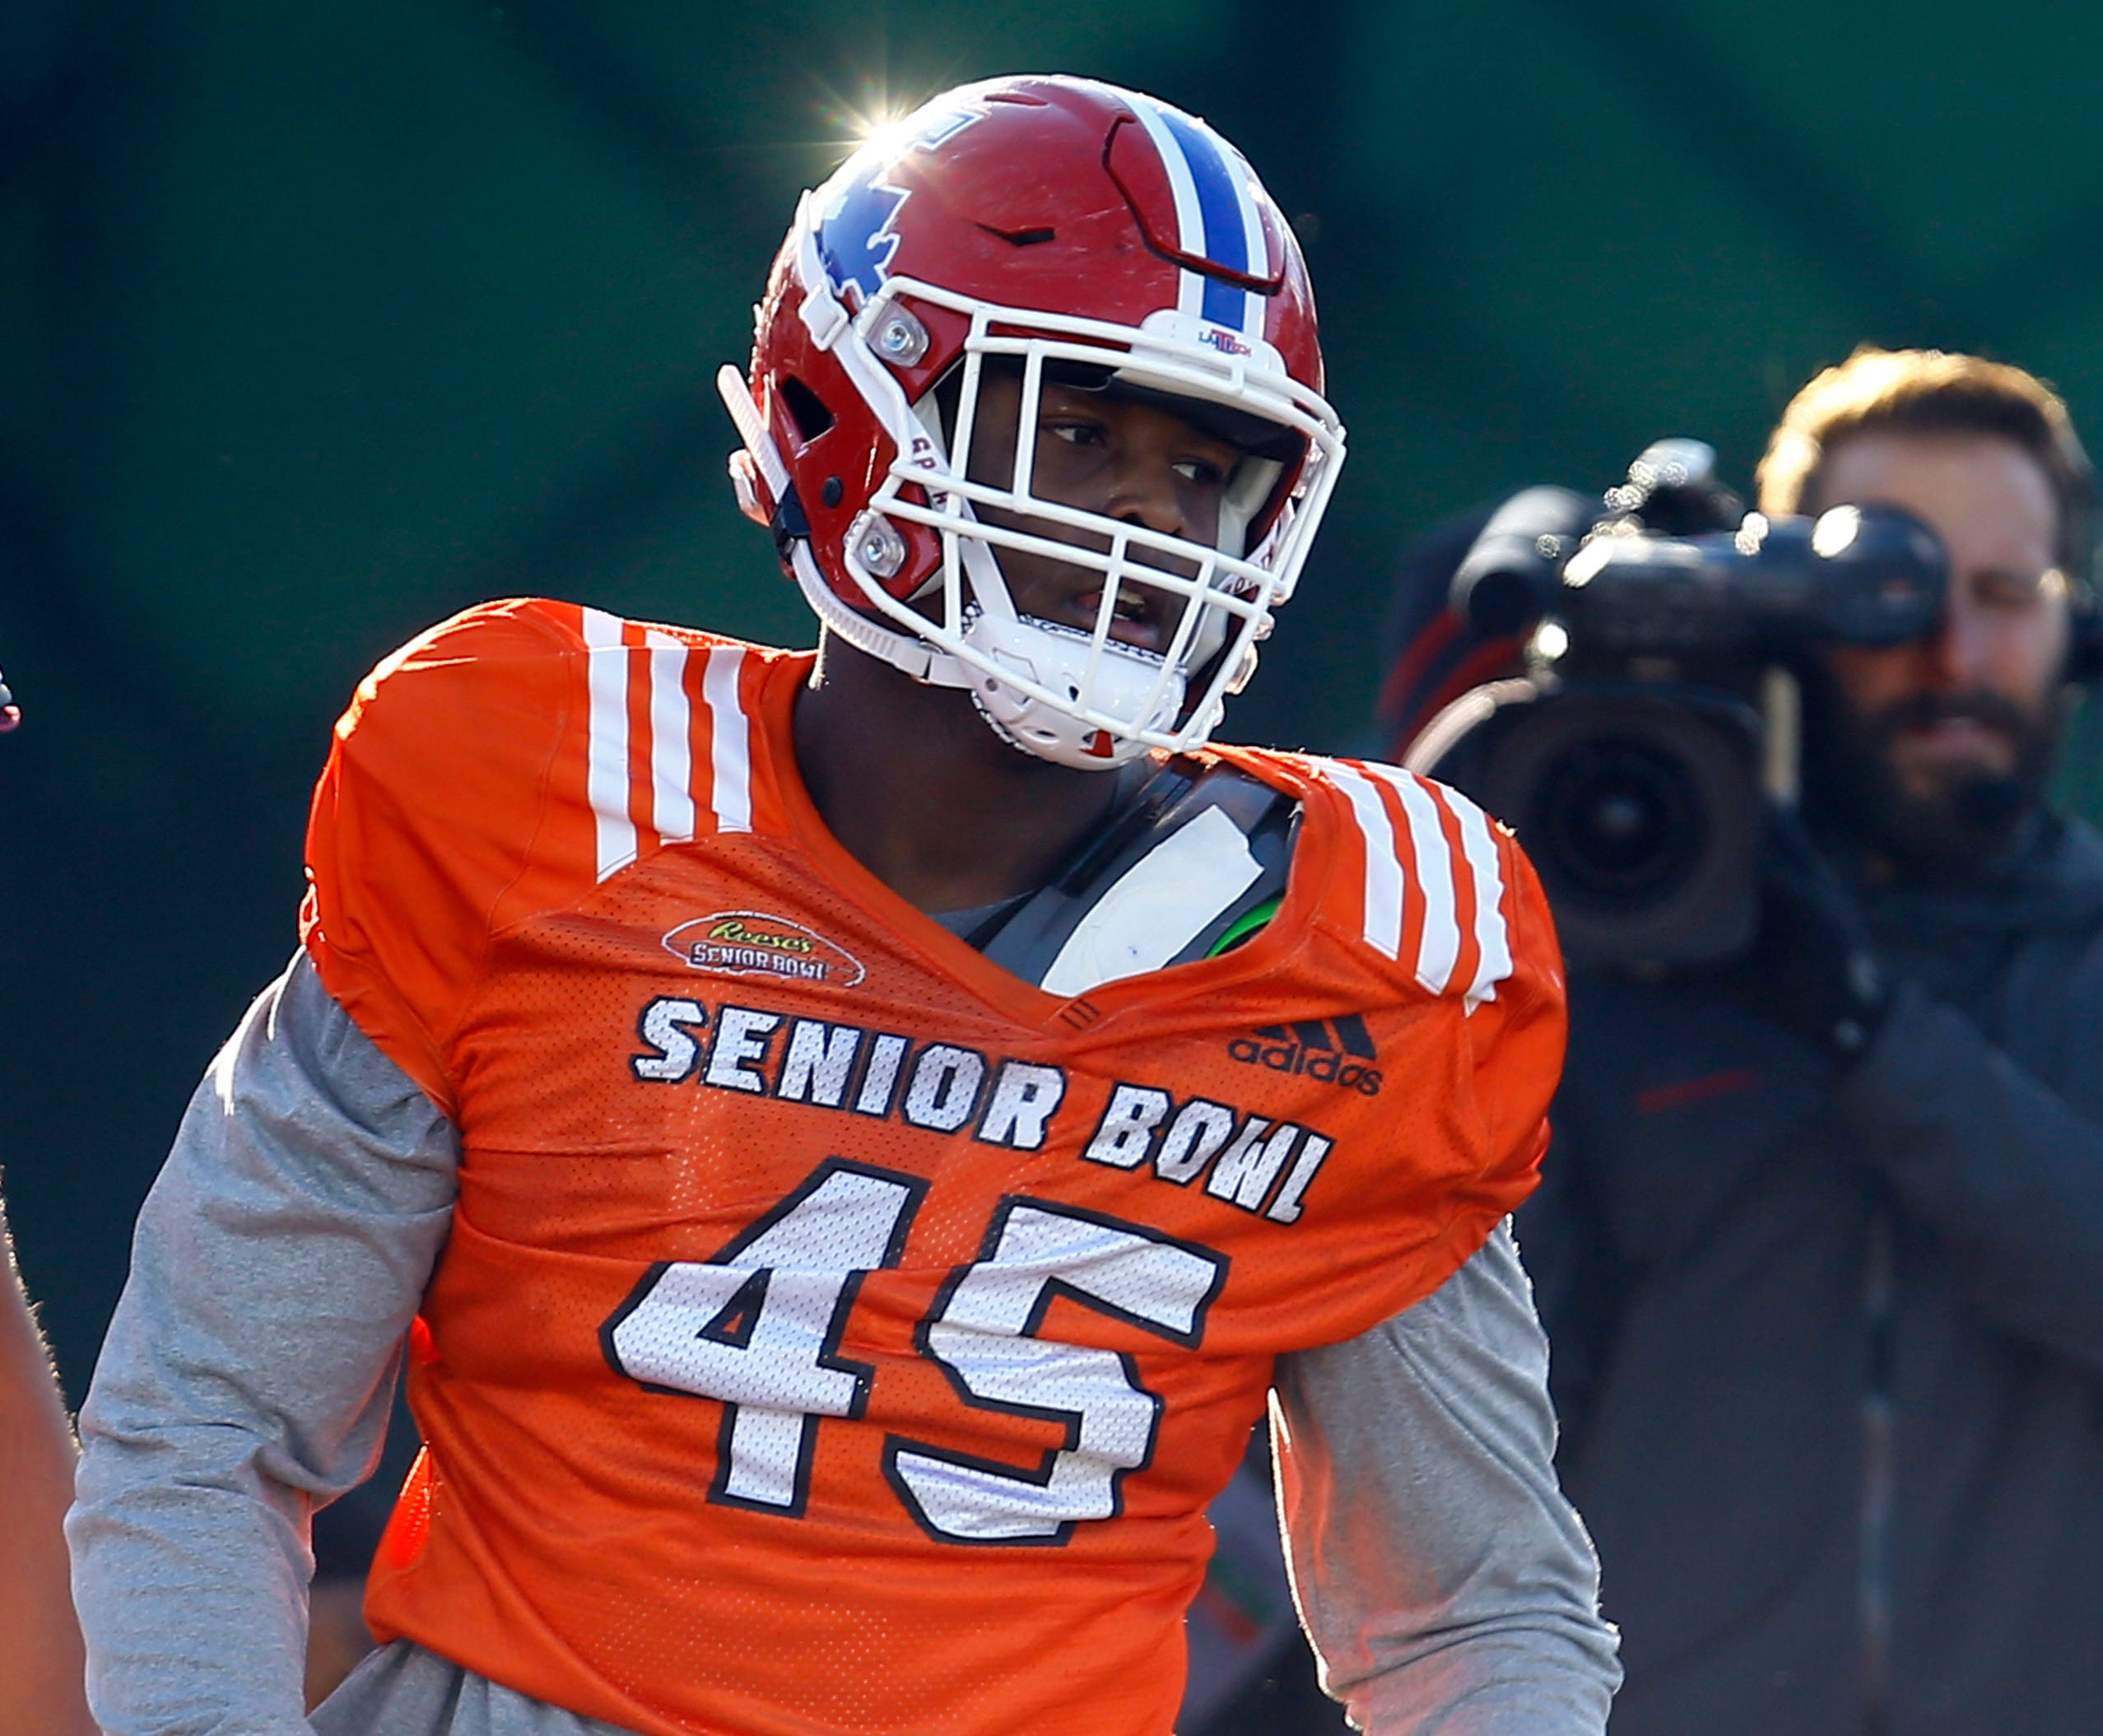 Jaylon Ferguson takes part in practice for the Senior Bowl.